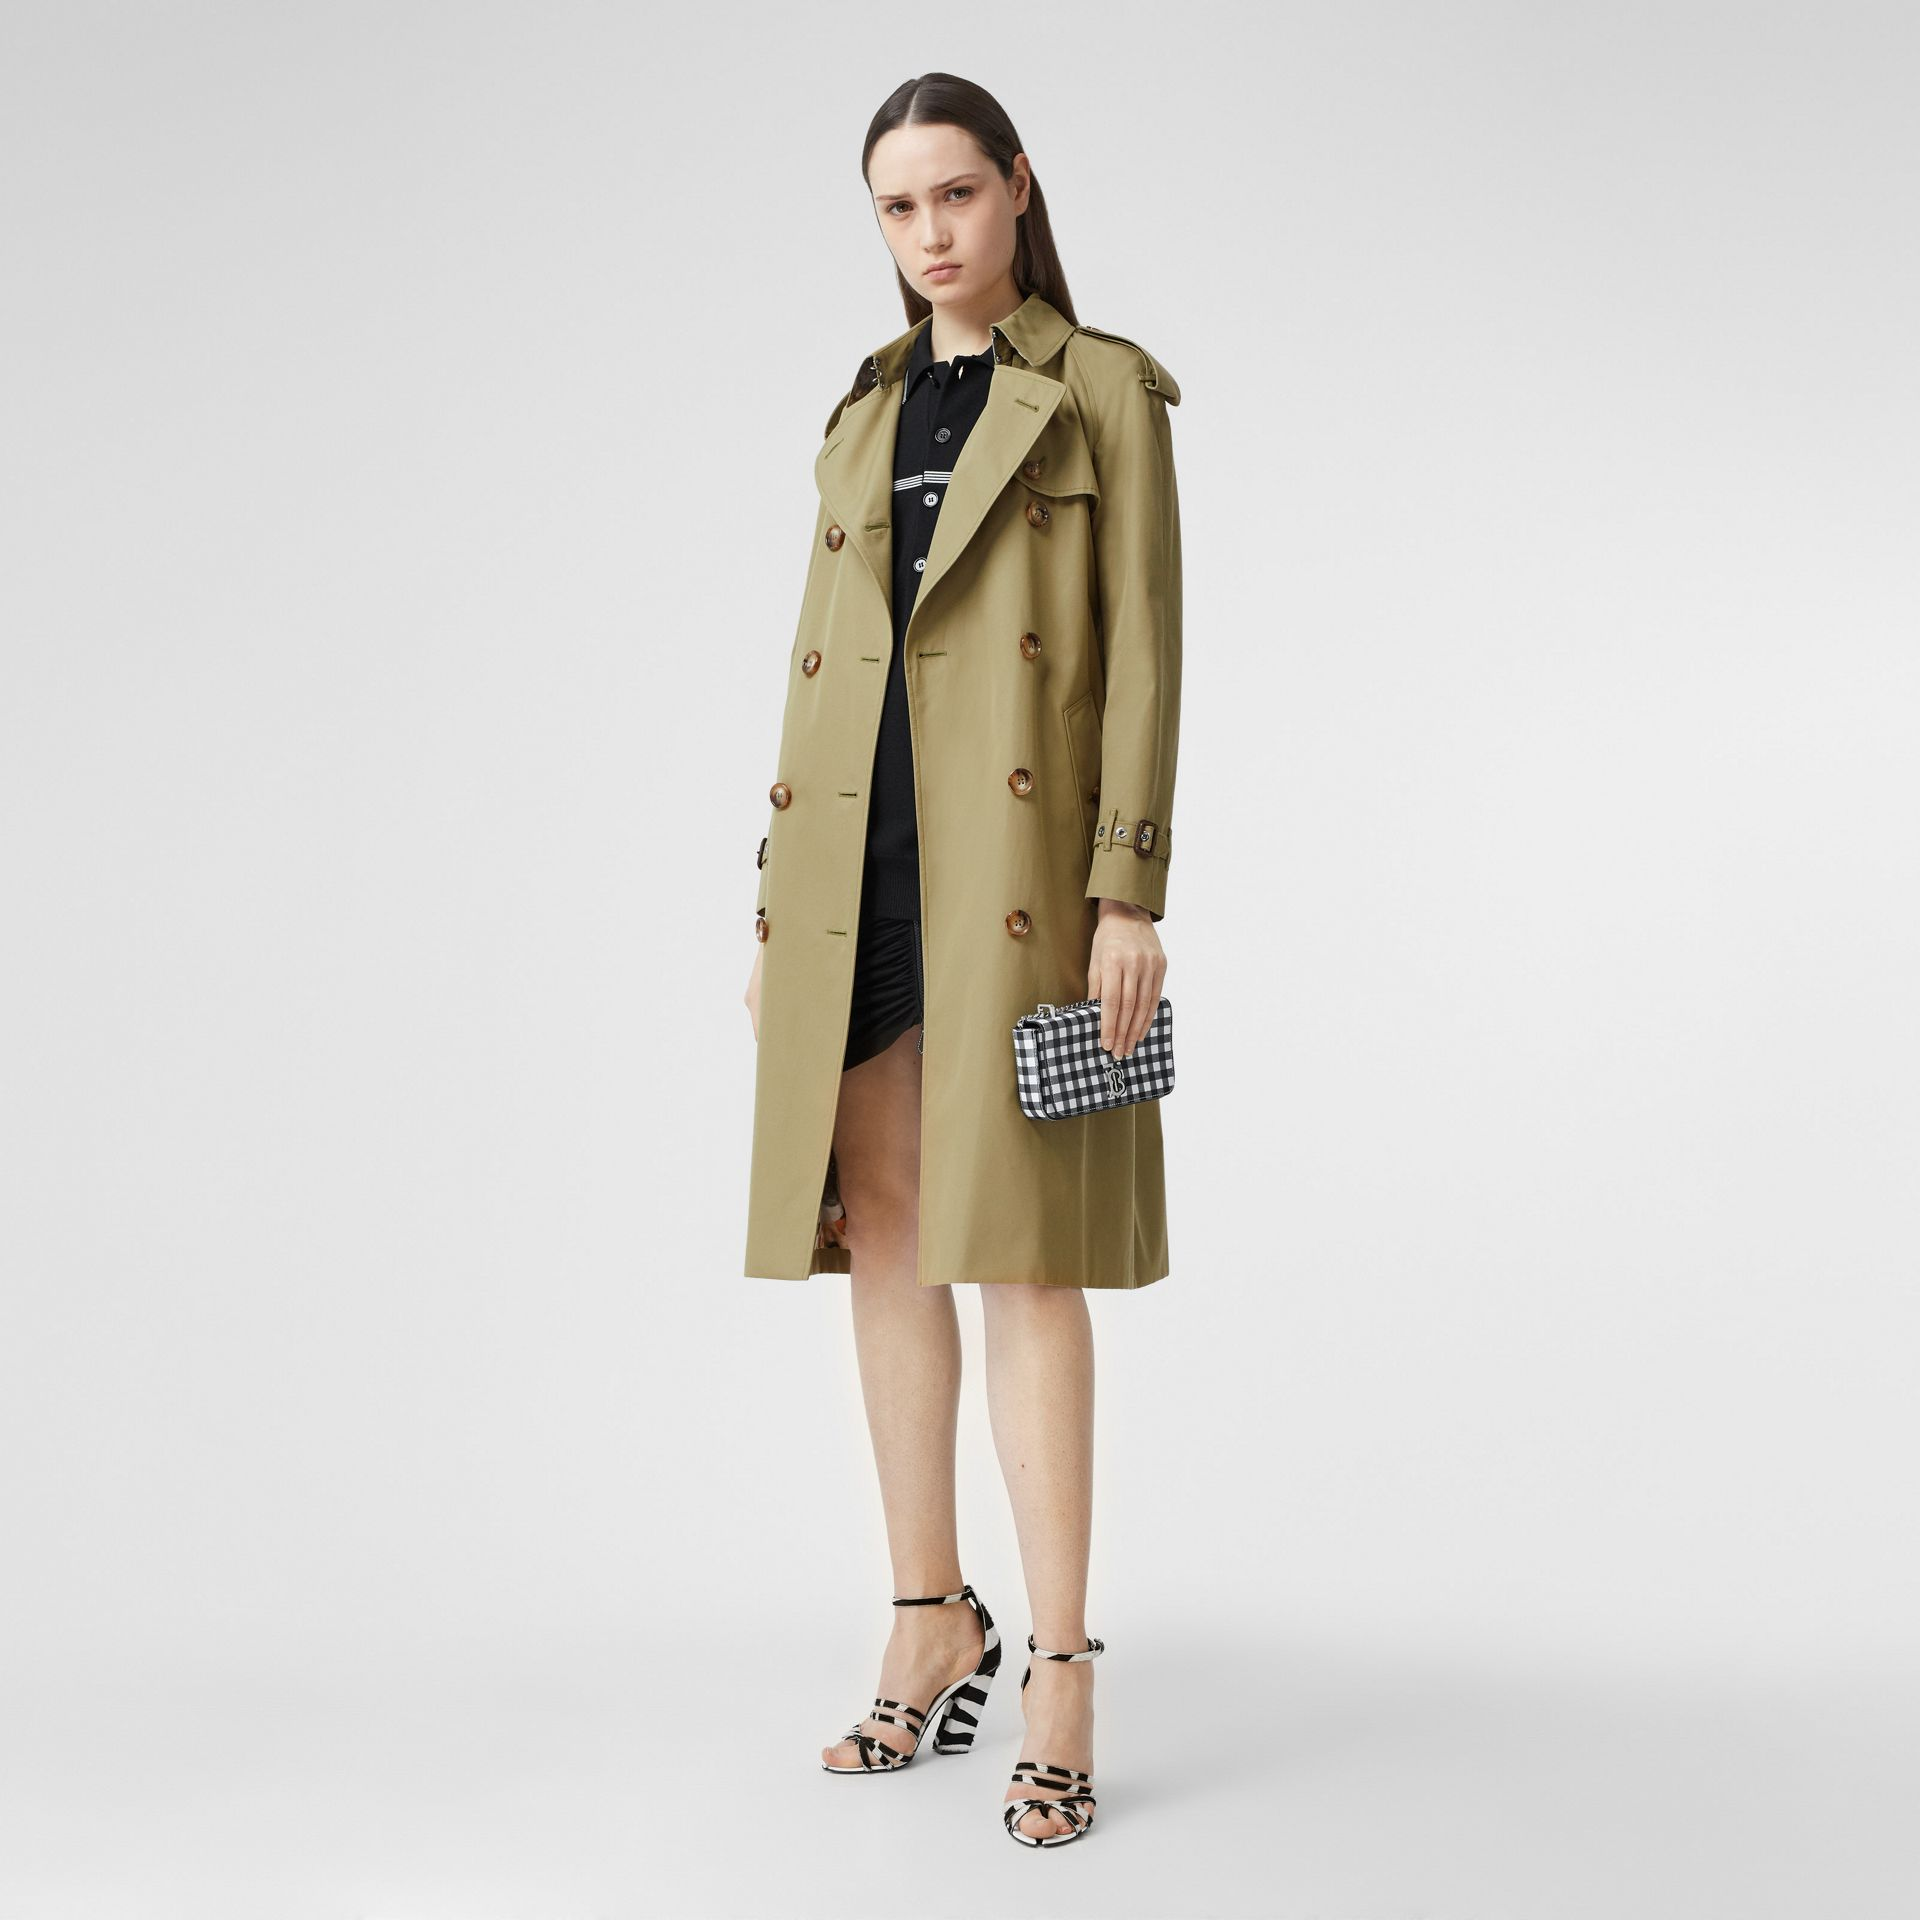 Animalia Print-lined Cotton Gabardine Trench Coat in Rich Olive - Women | Burberry - gallery image 6